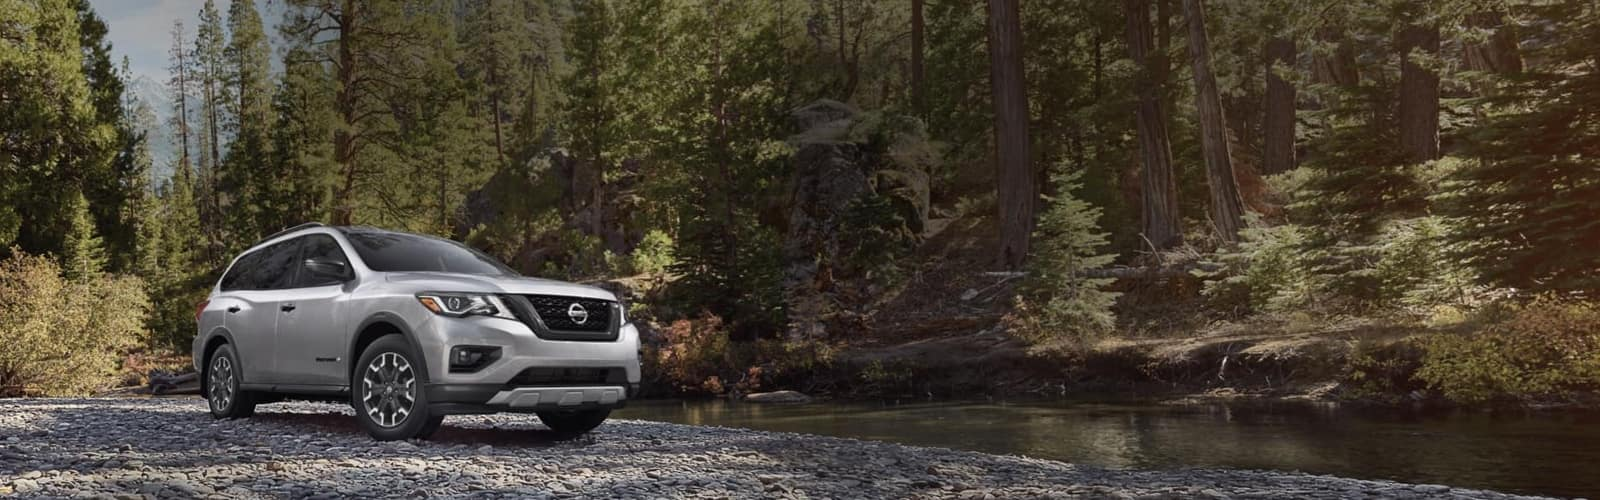 Silver SUV parker next to stream in a forest